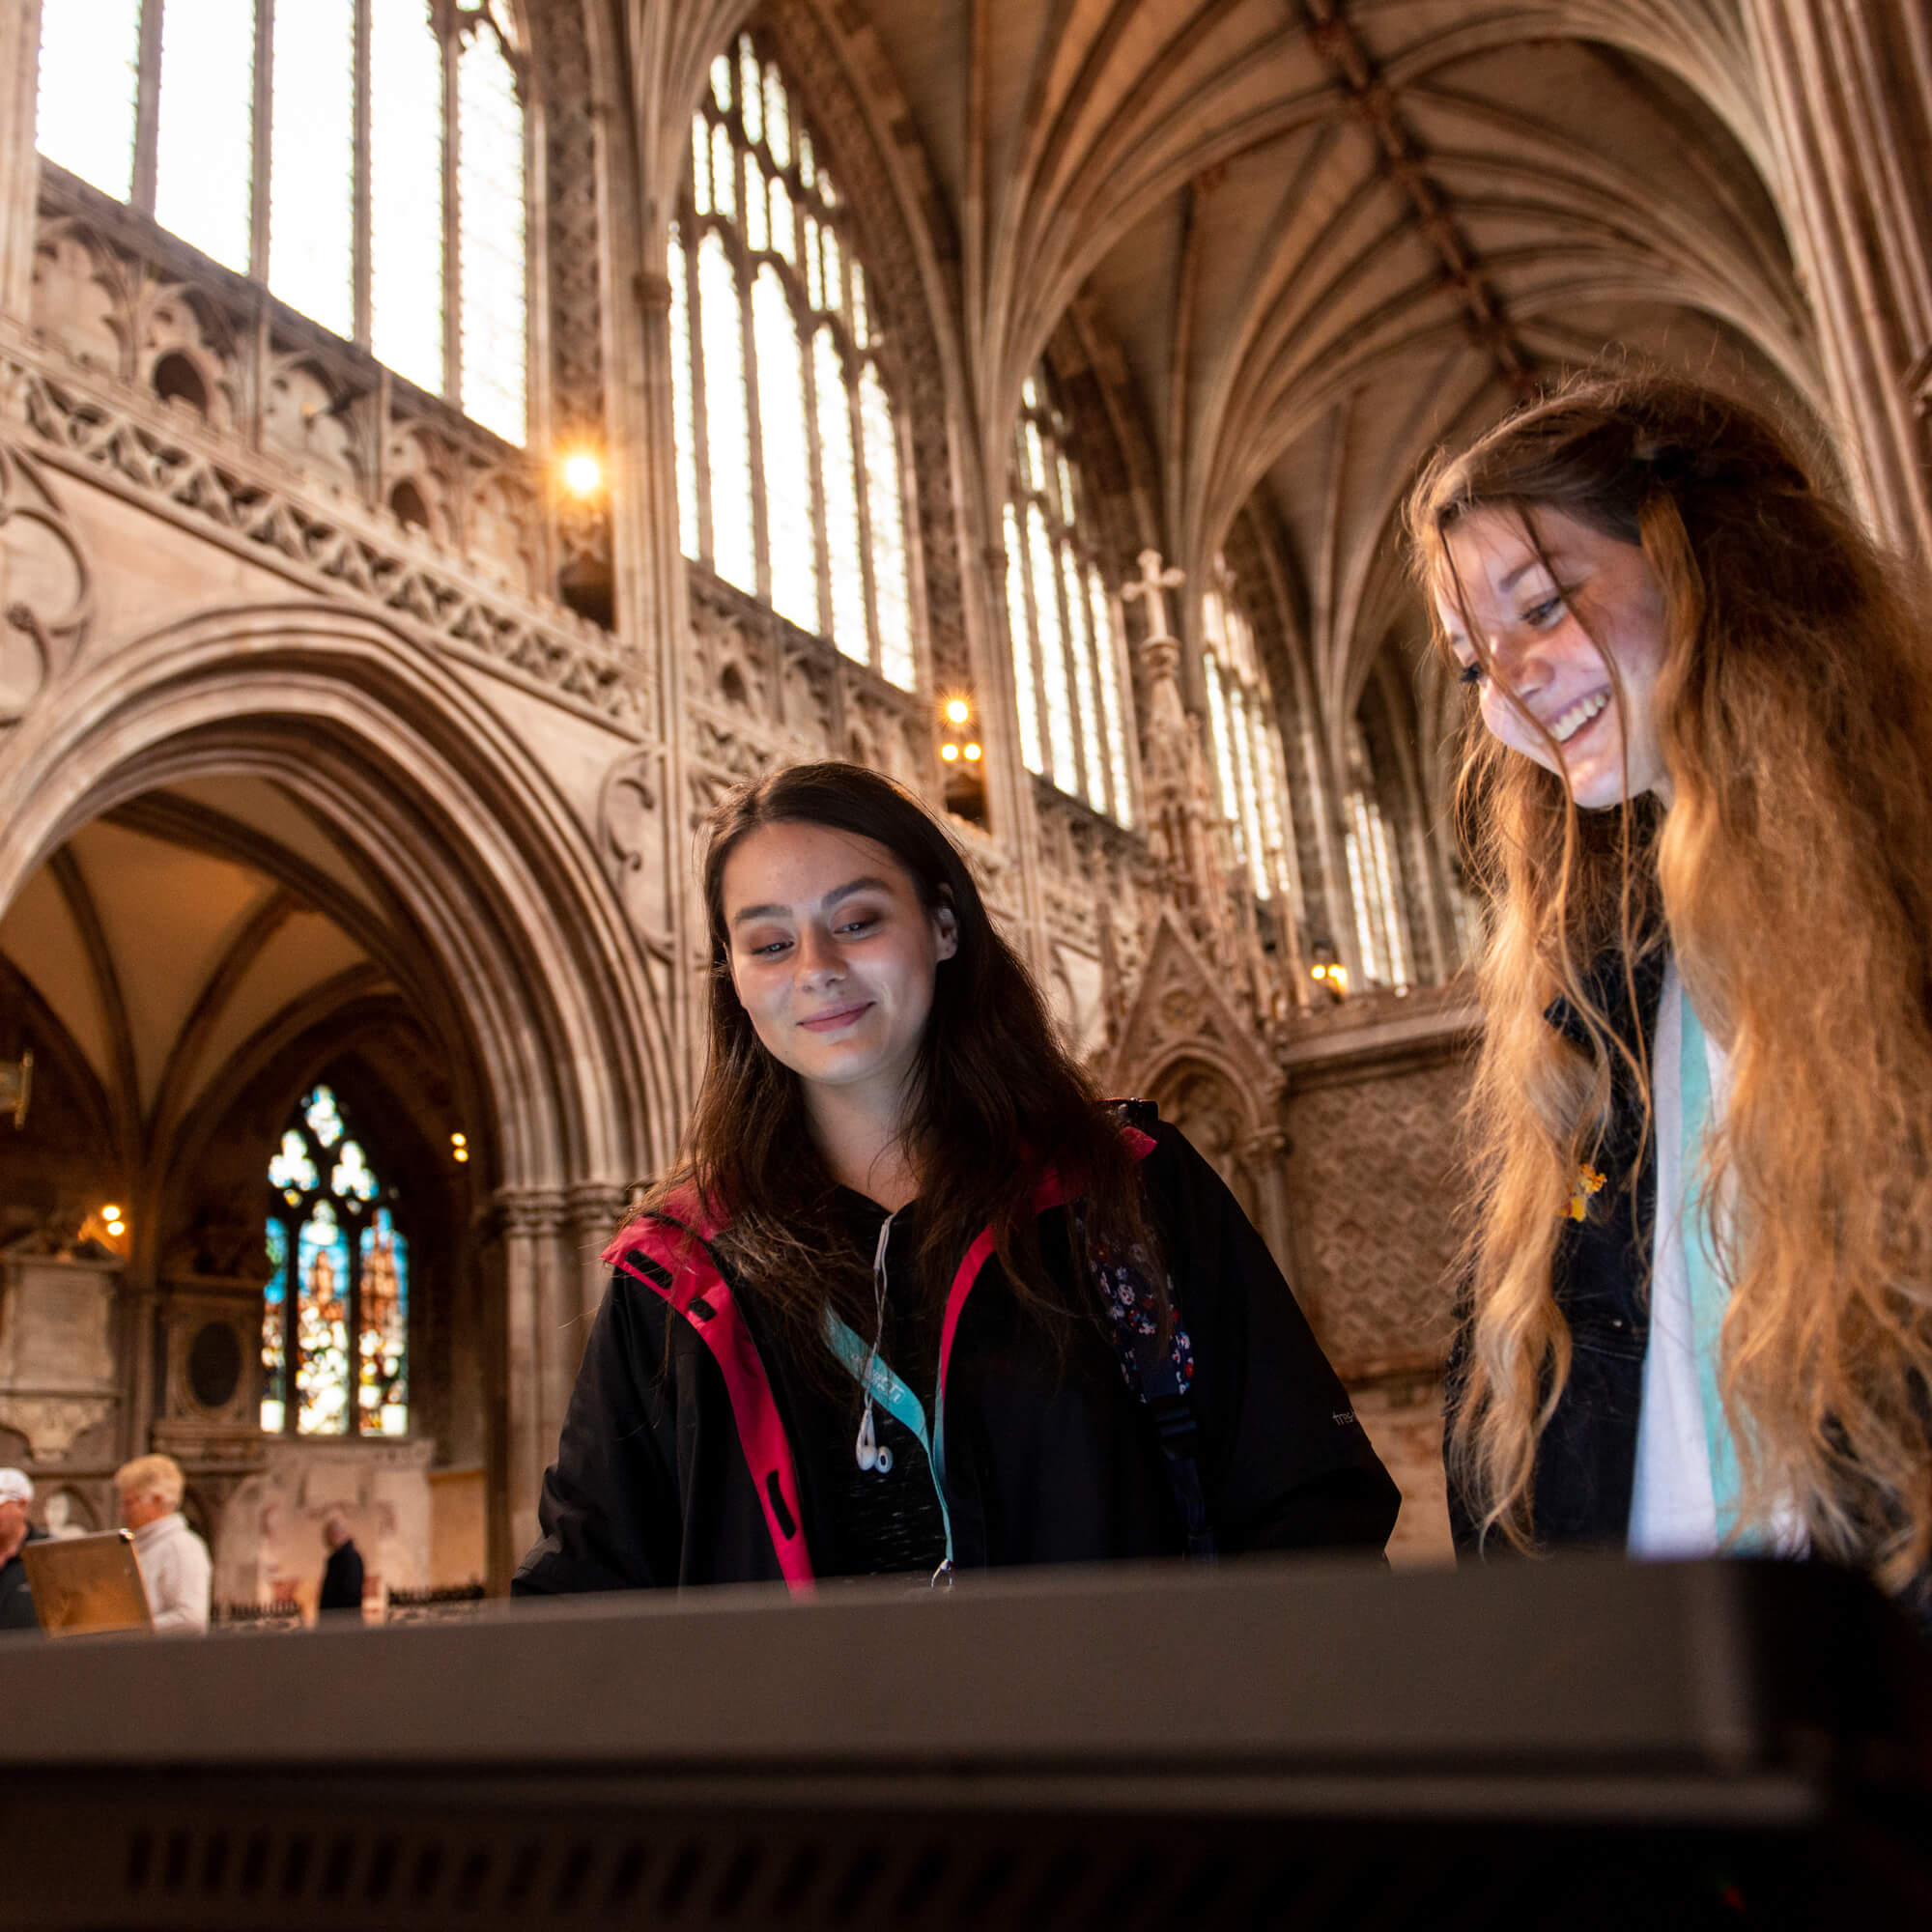 Two female students explore a place of worship